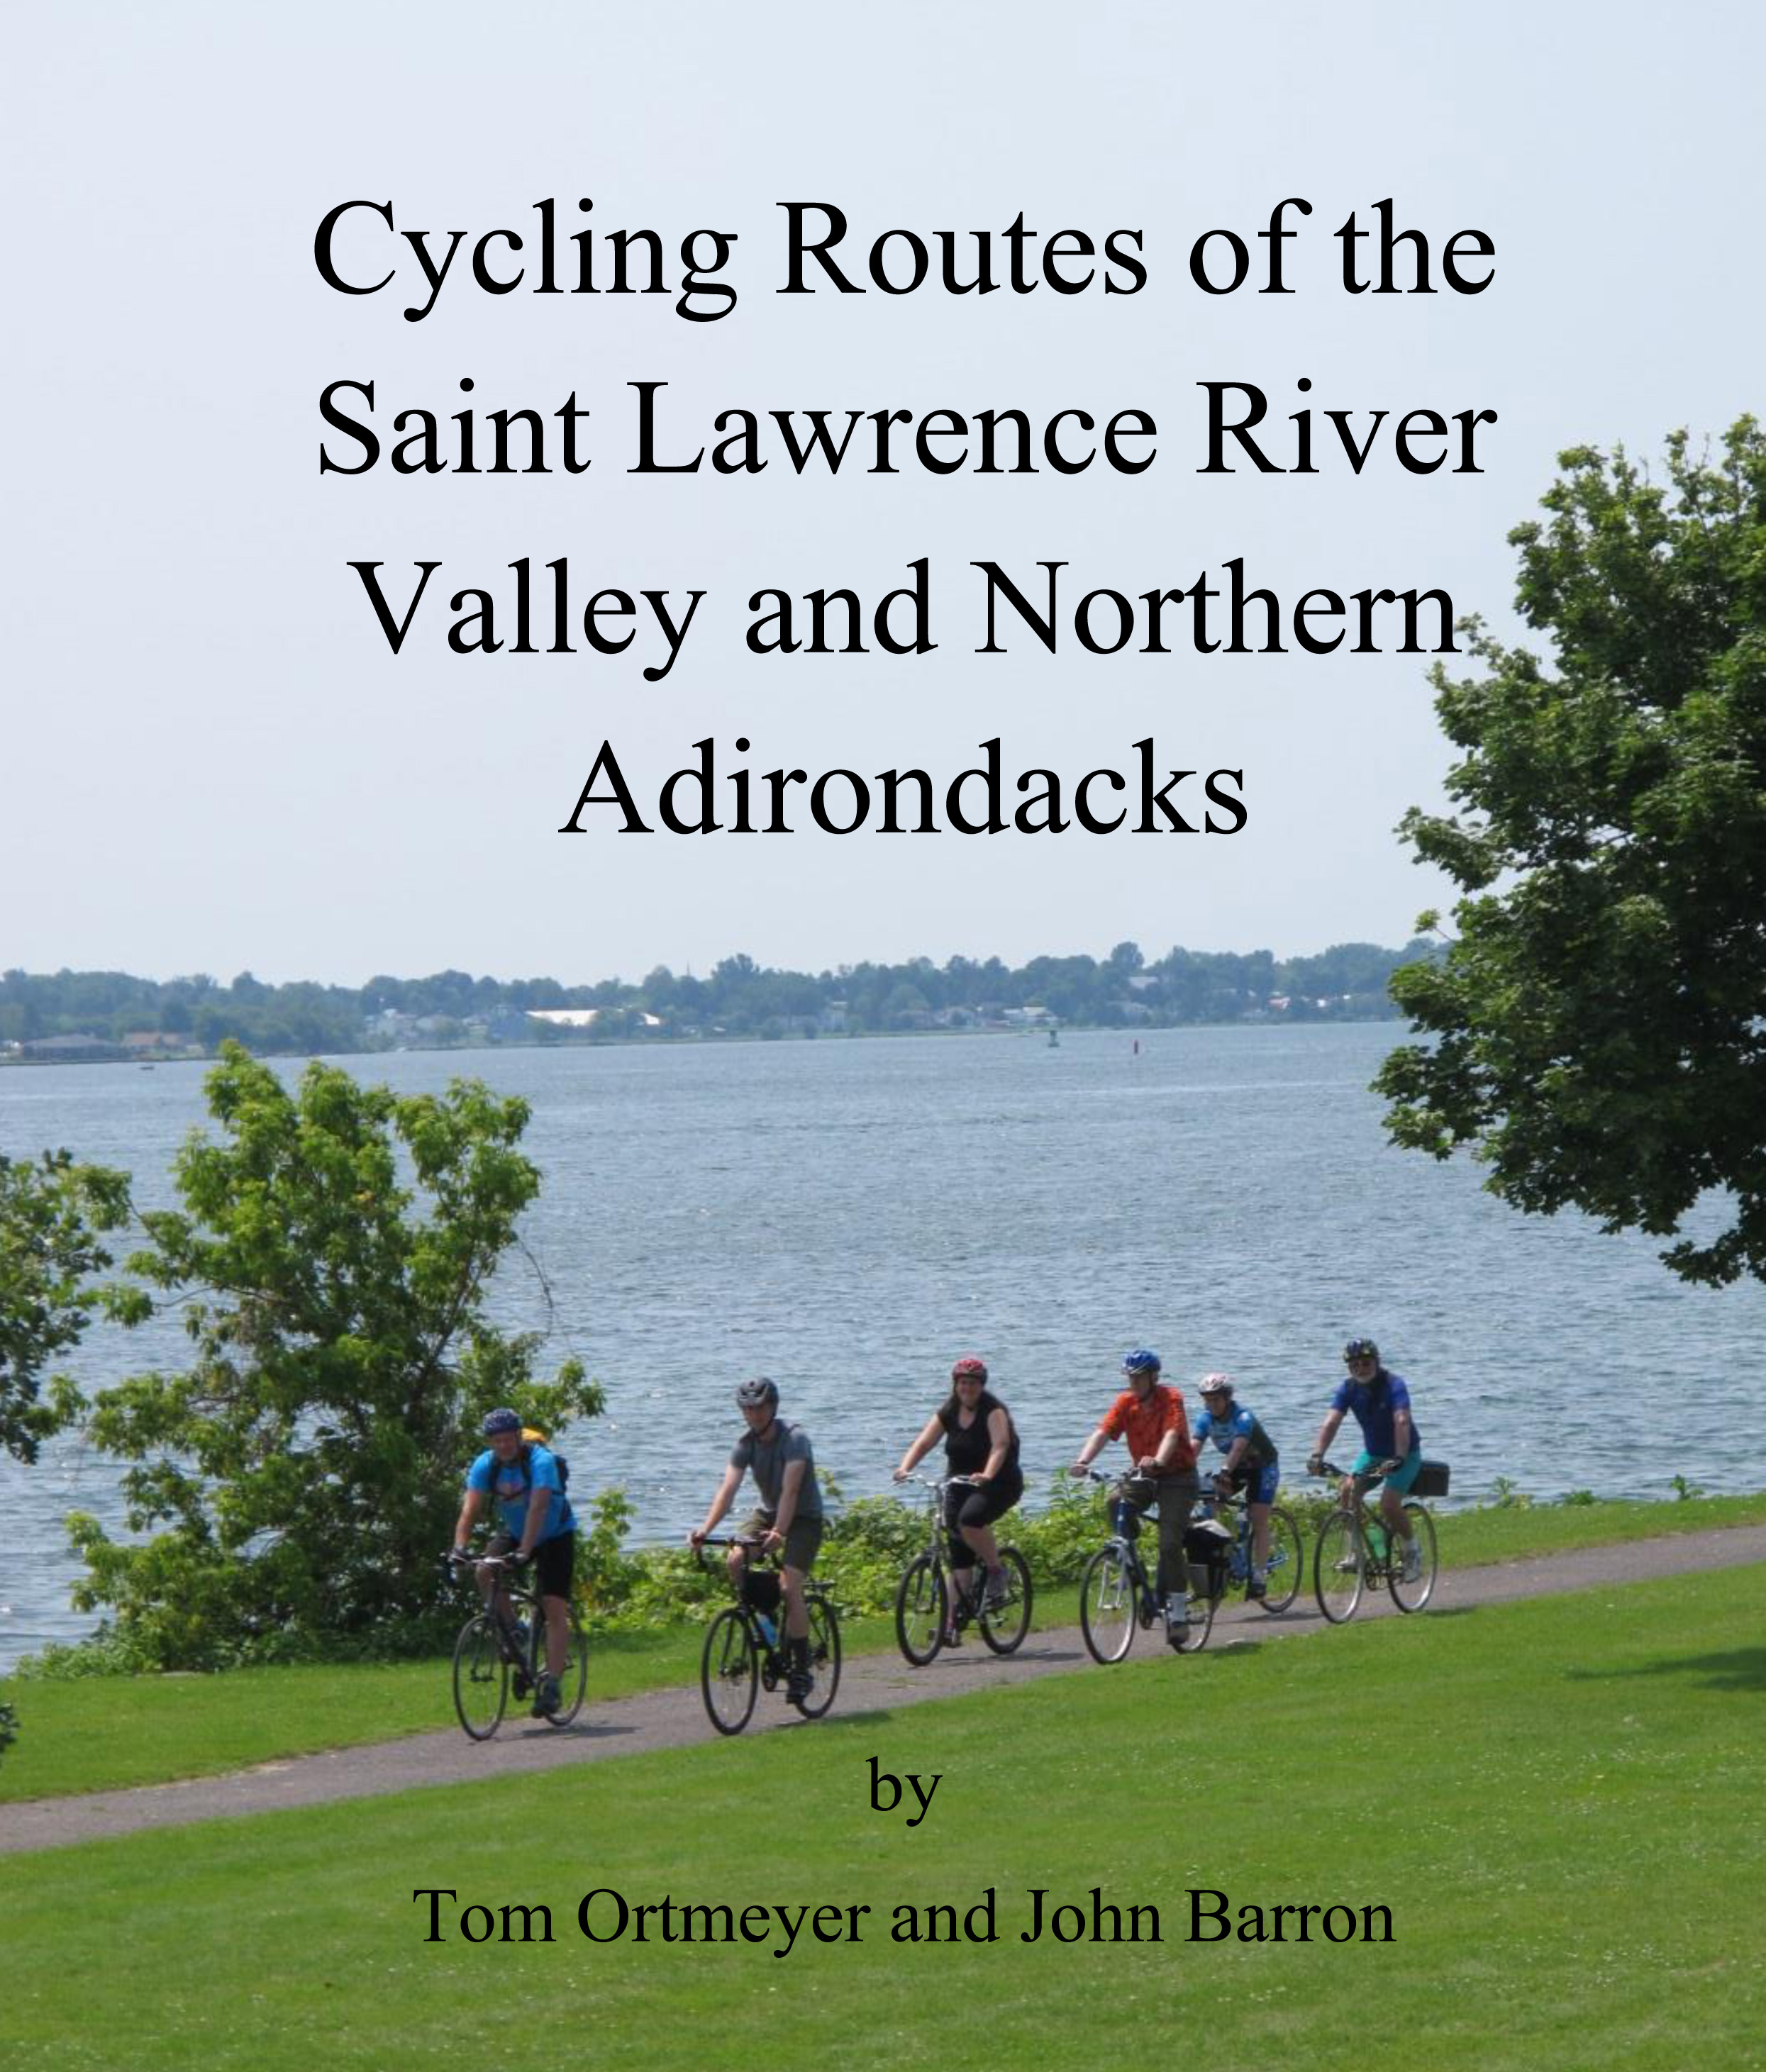 Cycling Routes of the Saint Lawrence River Valley and Northern Adirondacks-1